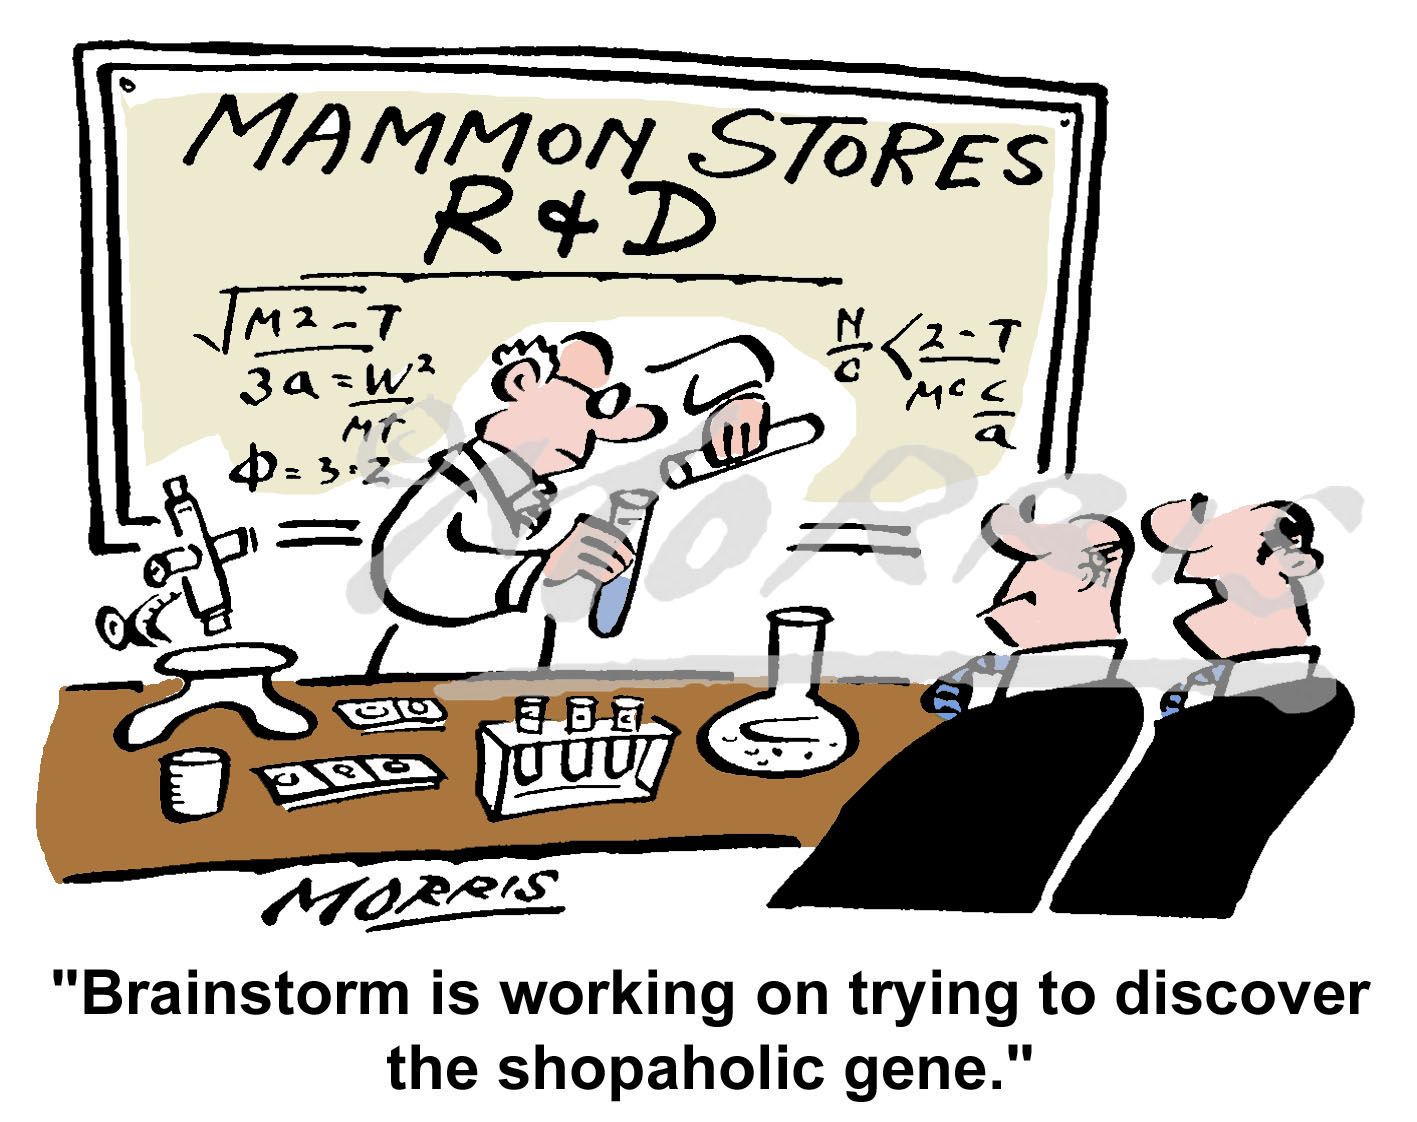 Research and Development cartoon – Ref: 2918col